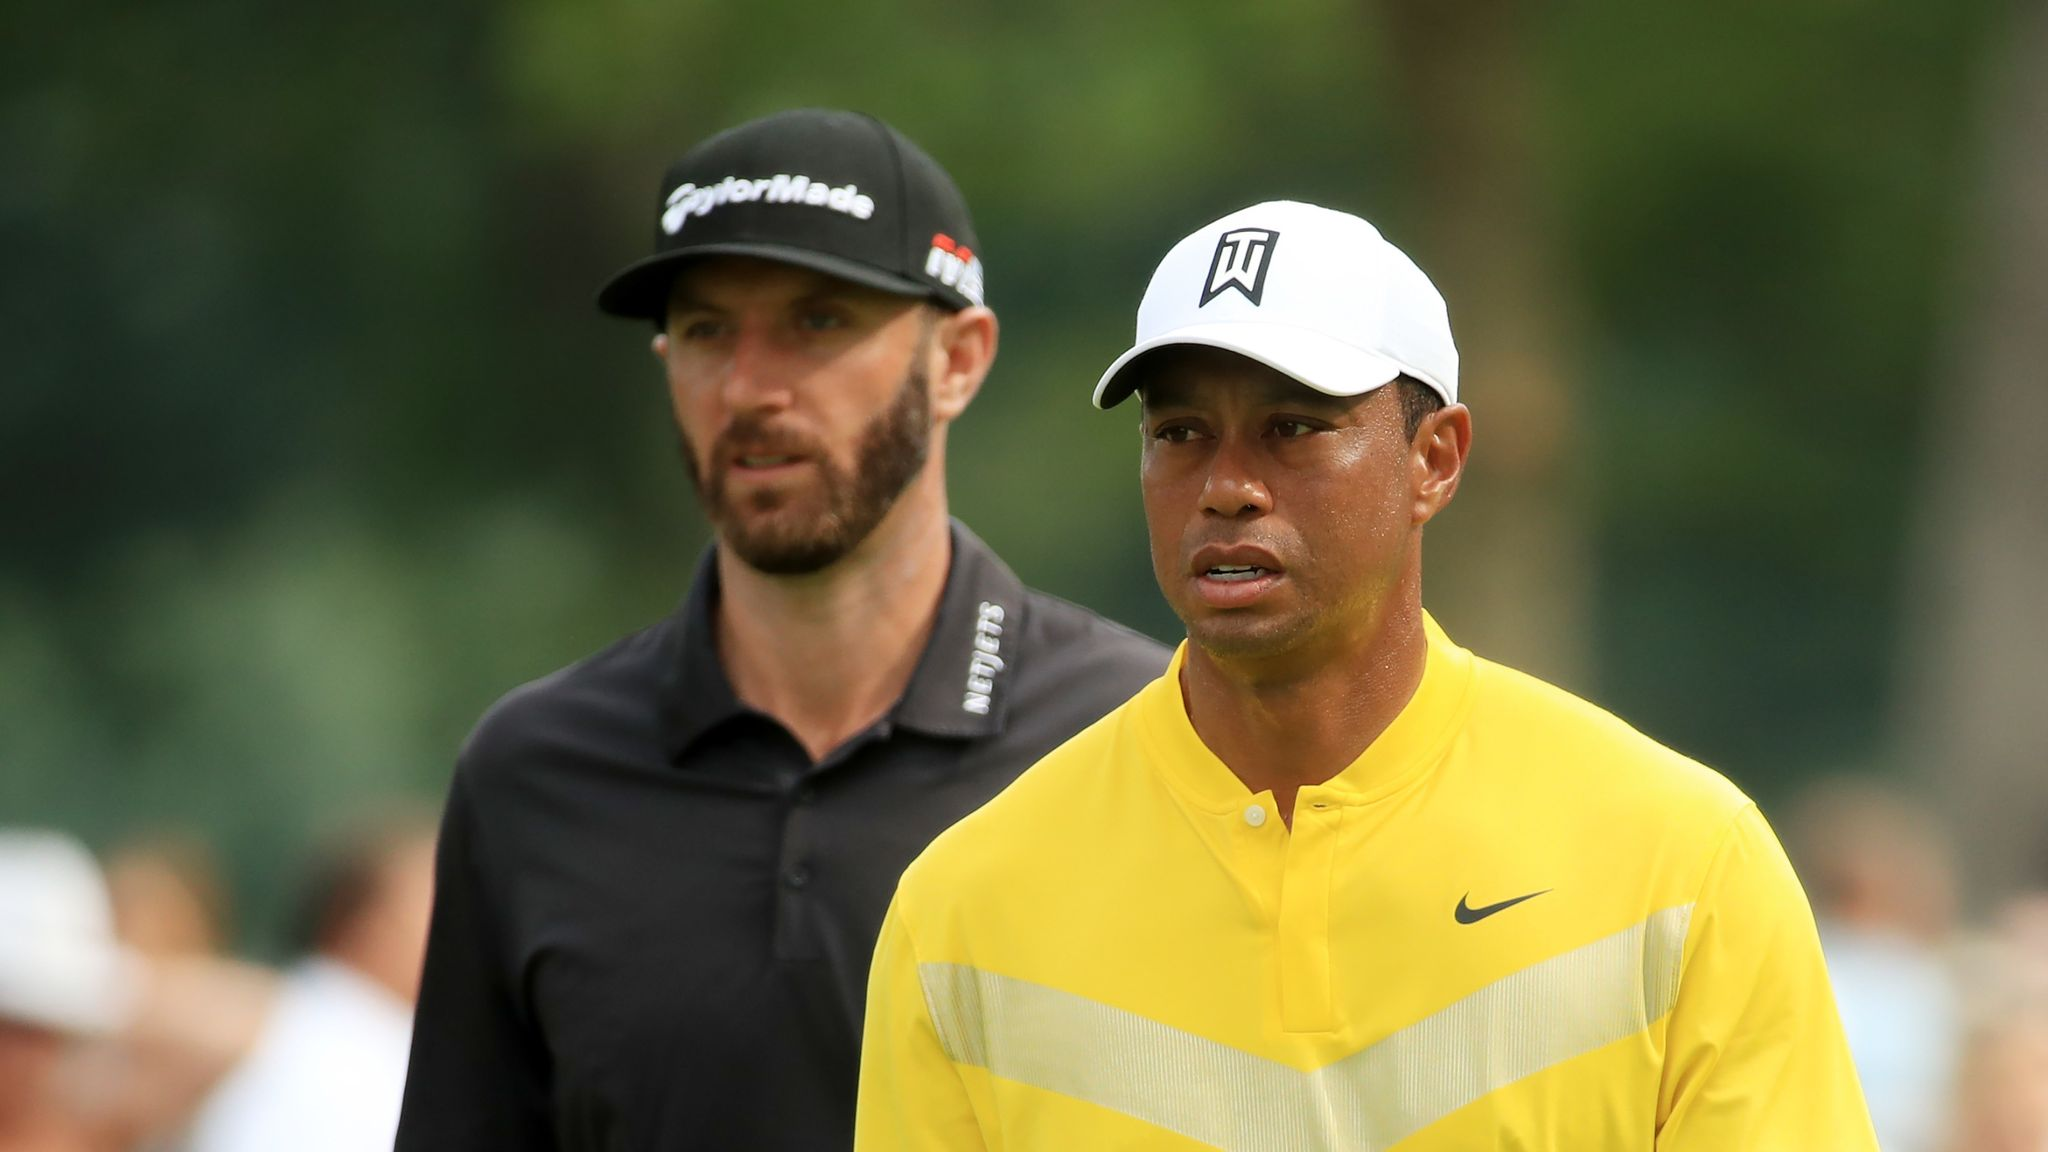 Olympic Games a low priority for Brooks Koepka and Dustin Johnson